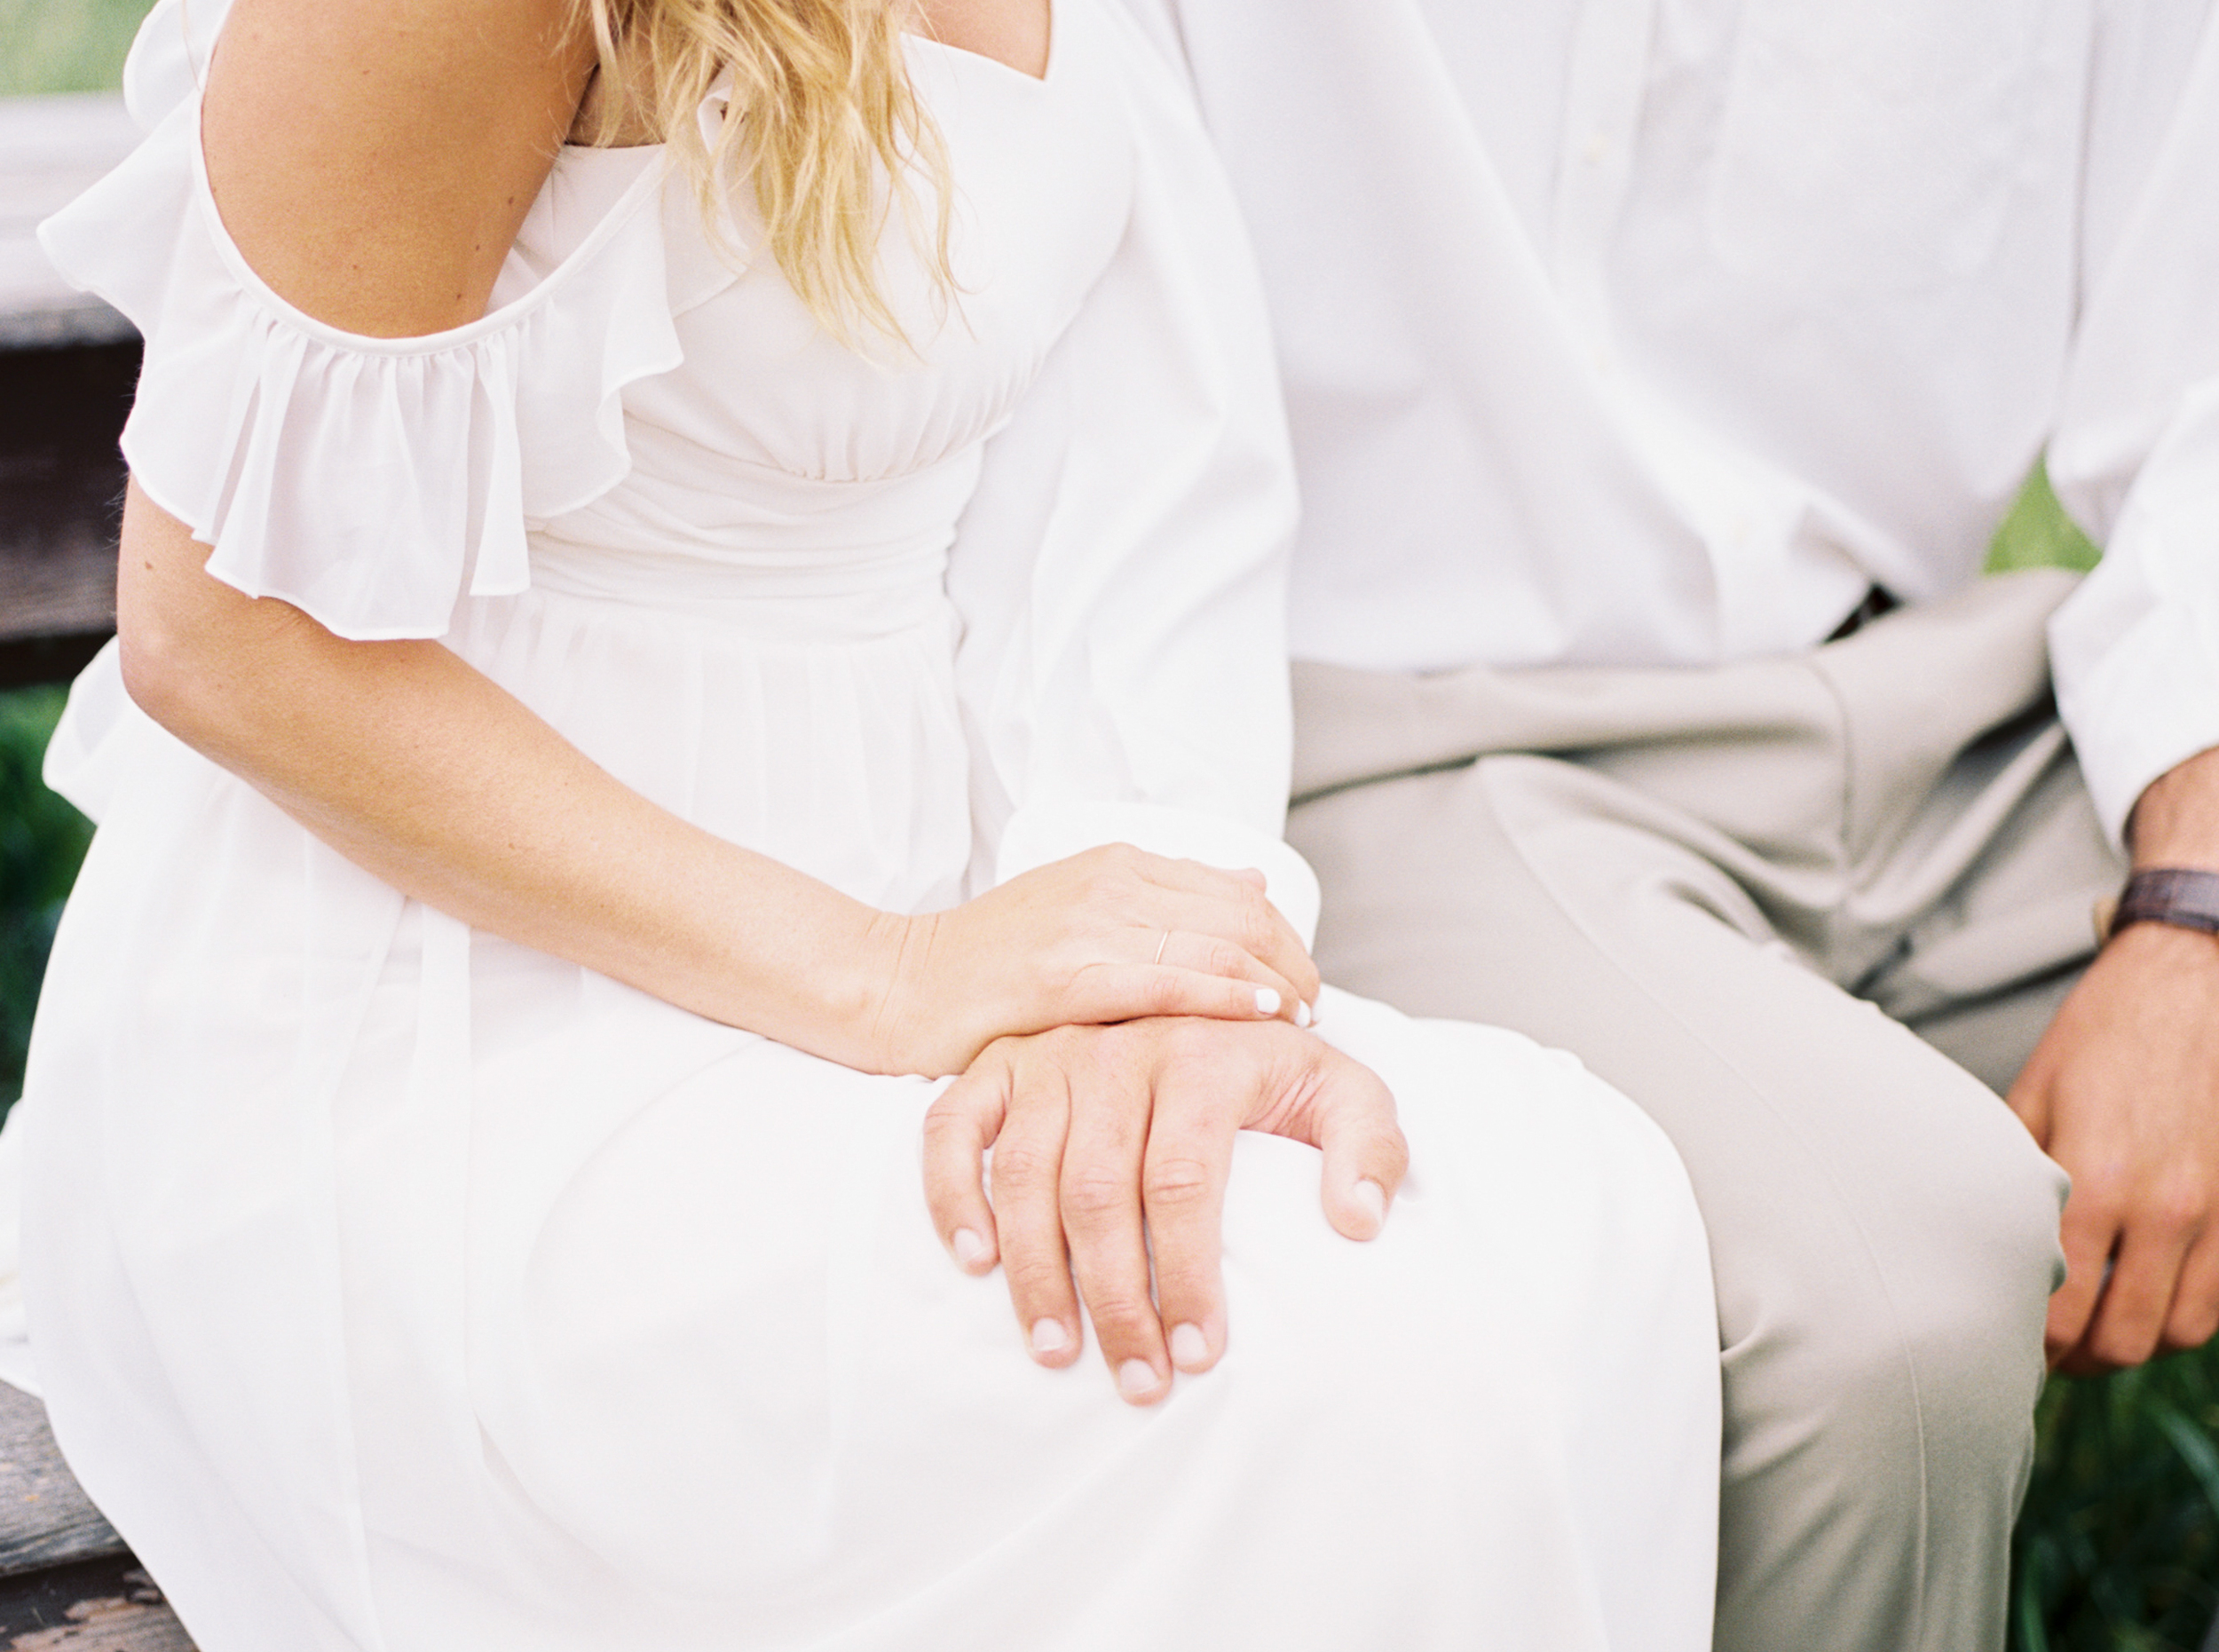 Danford-Photography-Bozeman-Montana-California-Wedding-Engagement-Photographer-41.jpg